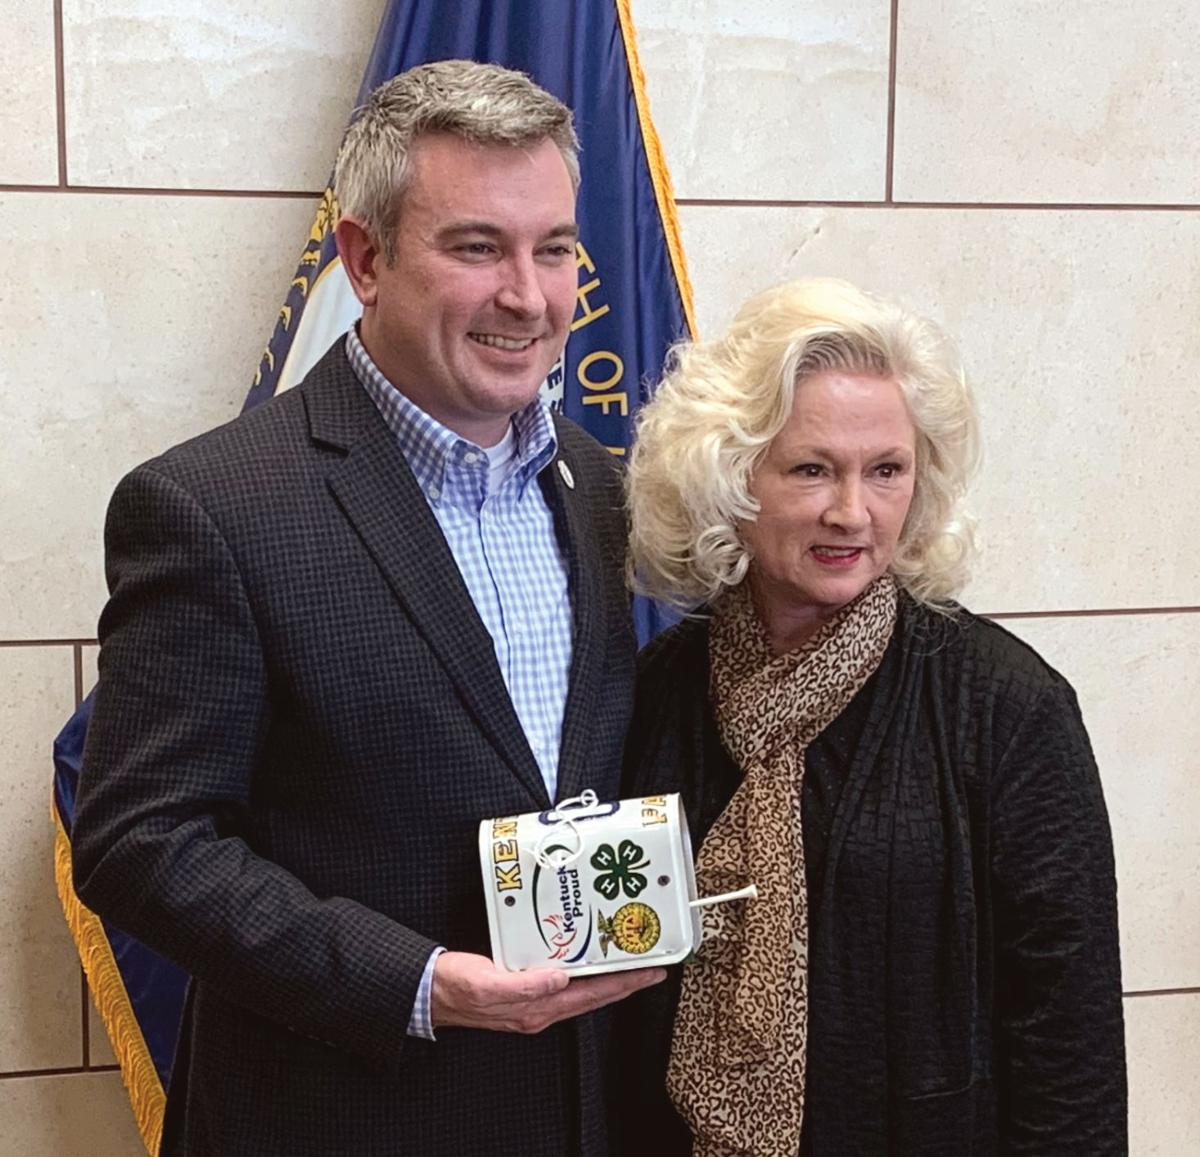 Commissioner visits clerk's office to promote Ag Tag campaign